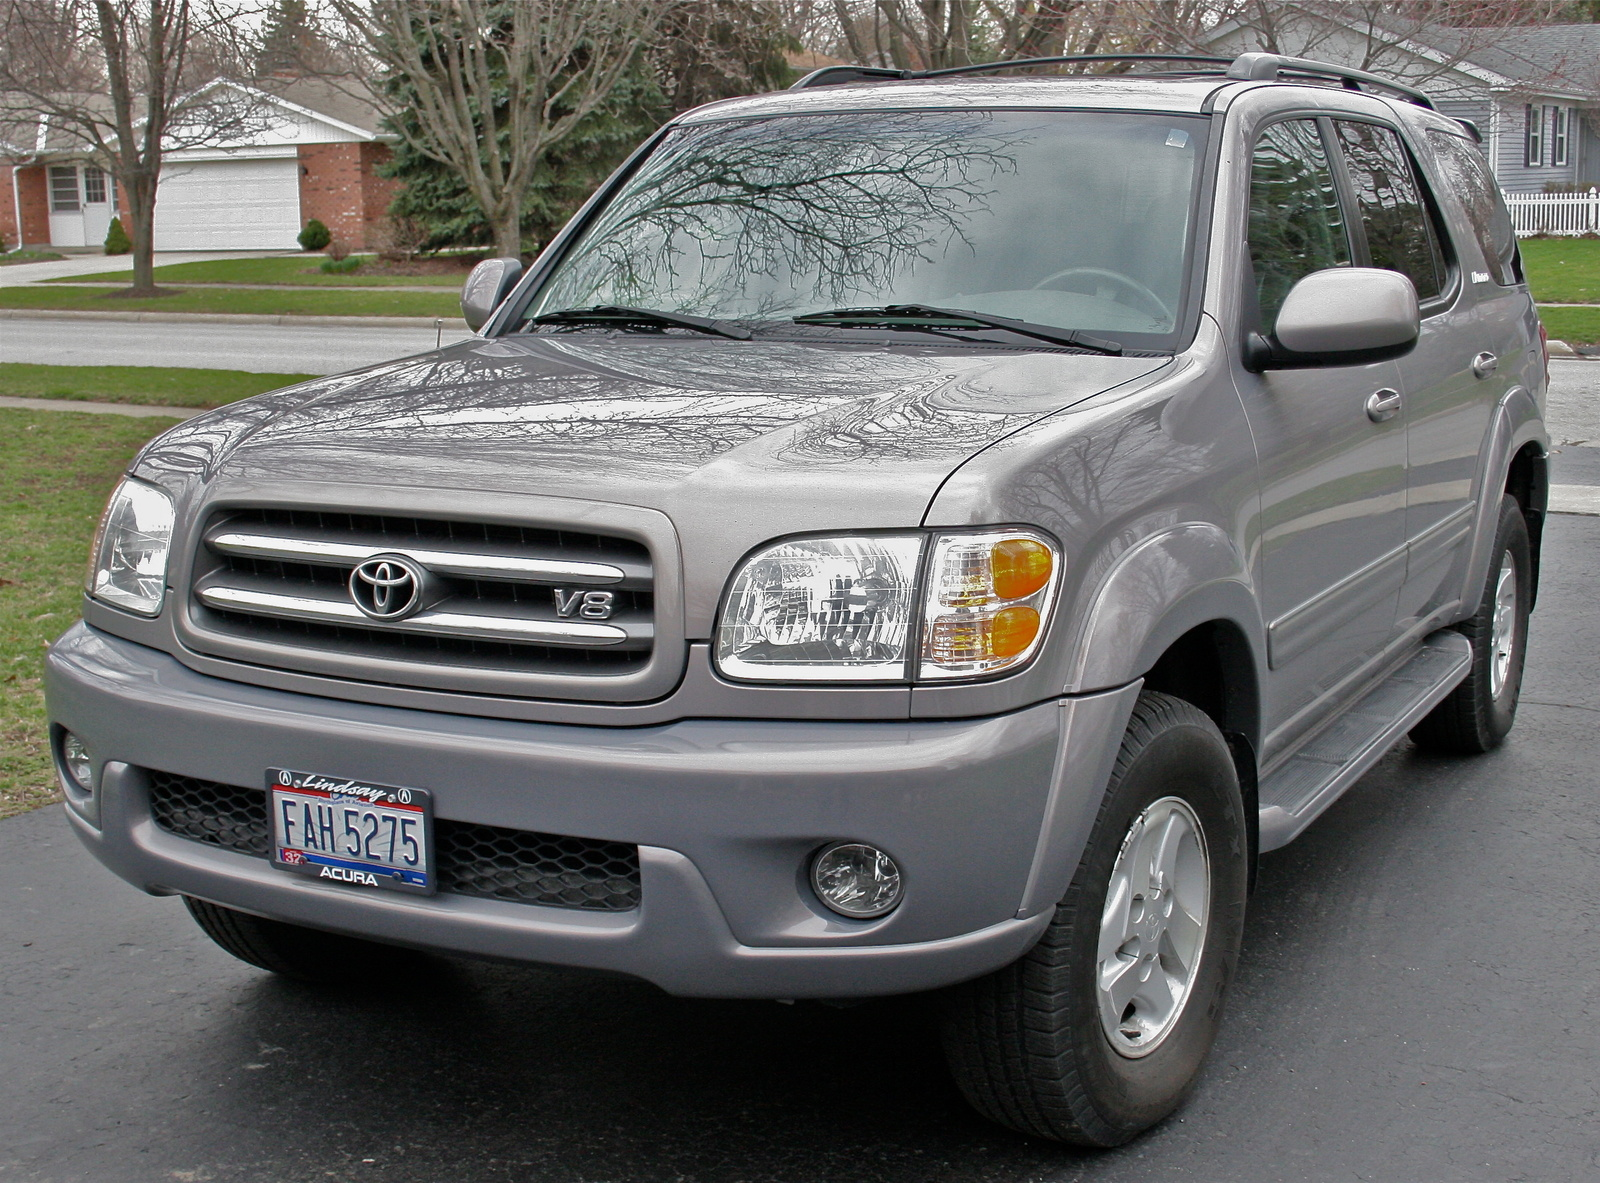 used toyota sequoia for sale toledo oh cargurus. Black Bedroom Furniture Sets. Home Design Ideas